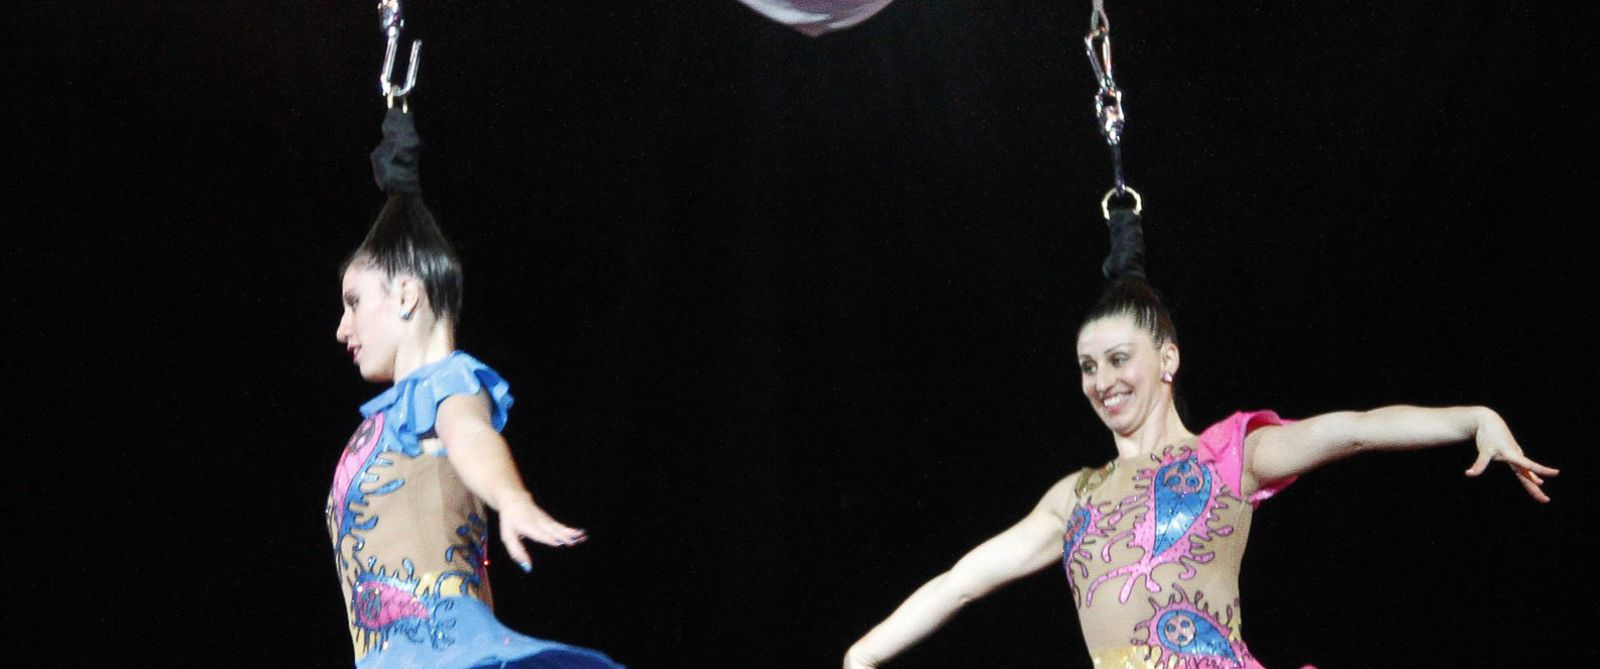 PHOTO: Performers hang only by their hair during the Ringling Bros. and Barnum & Bailey Circus performance at Cumberland County Civic Center in this Oct. 26, 2010 file photo.